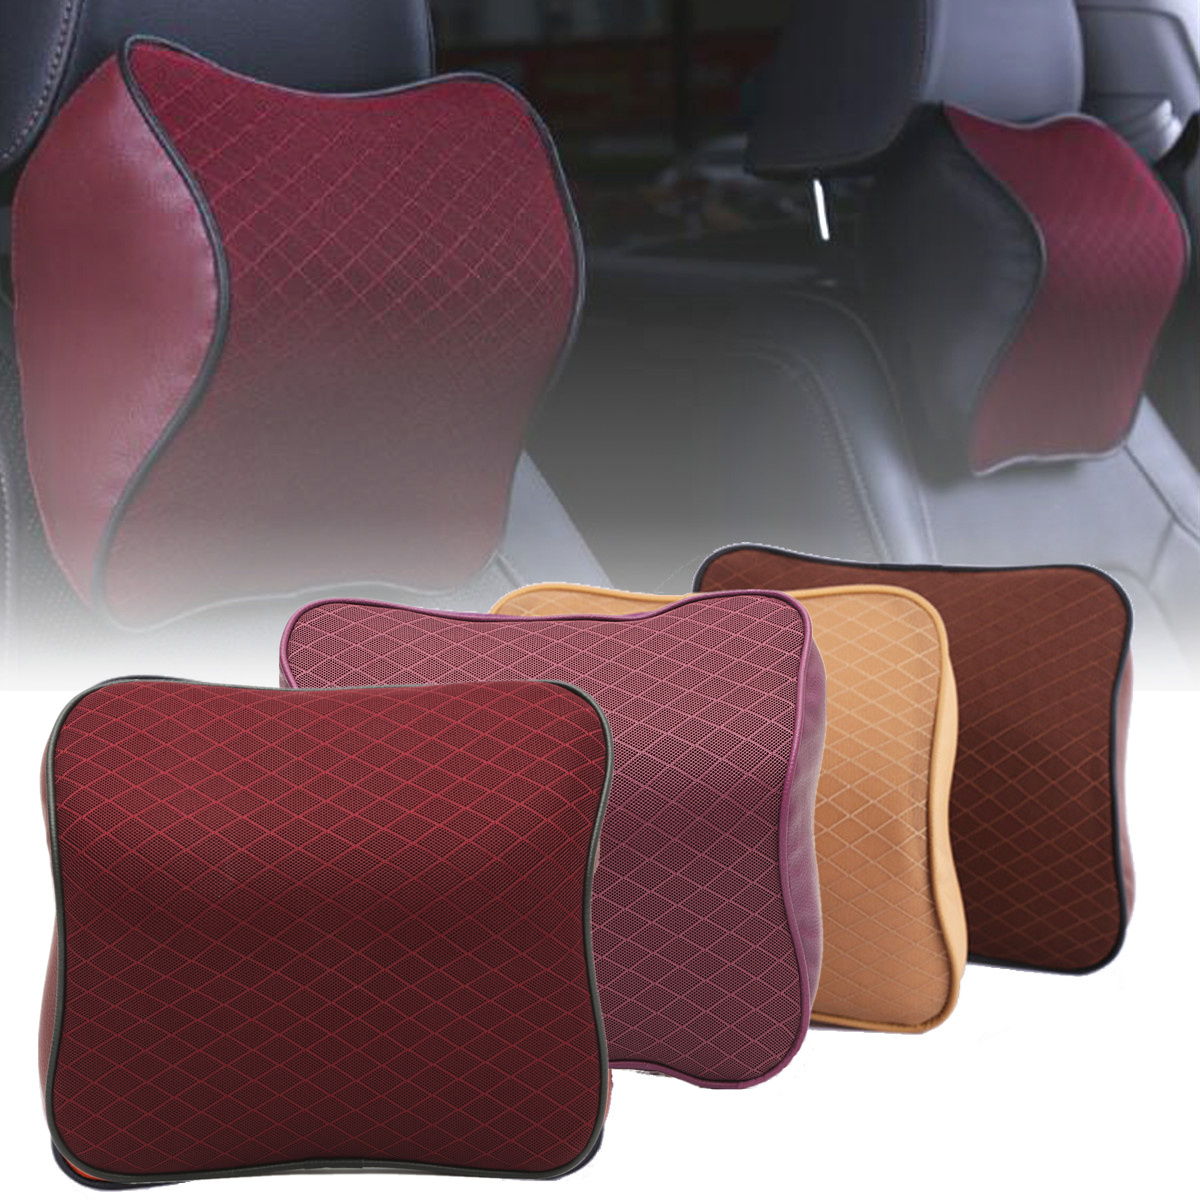 Neck Cushion Car Seat Headrest Pillow Breathable Mesh PU Leather Pad Memory Foam (Color: Beige, Wine red, Coffee, Purple)